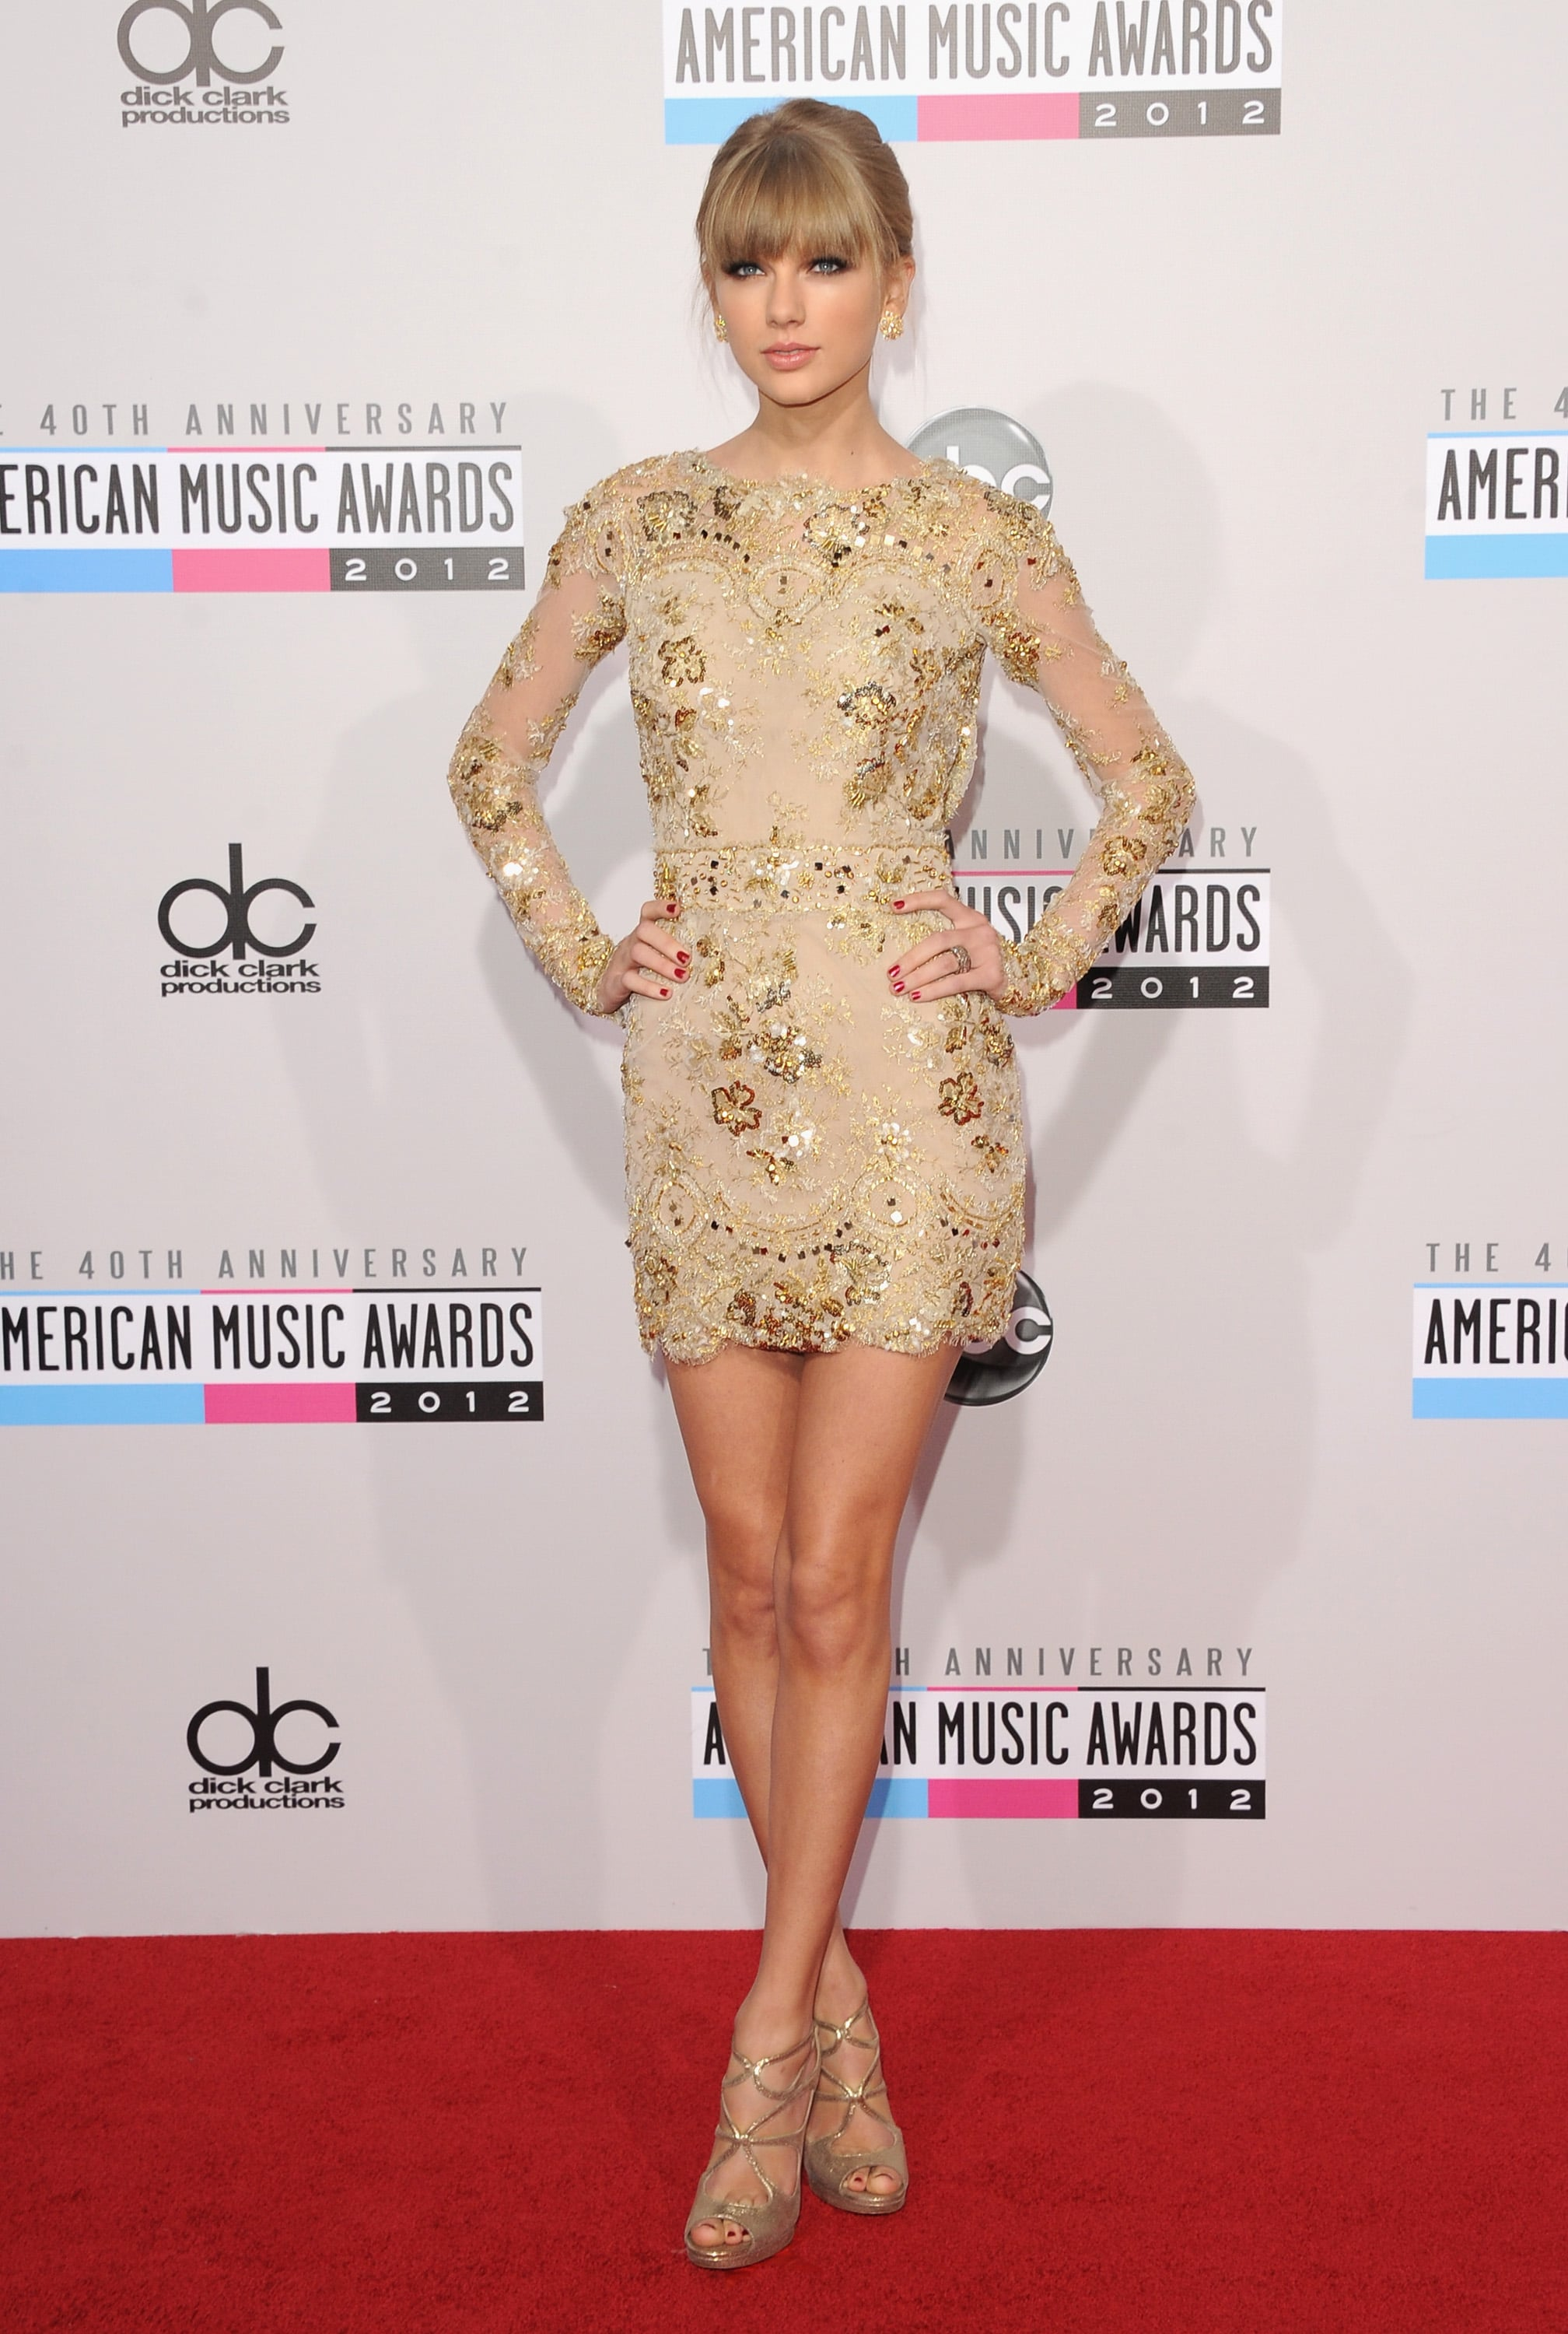 LOS ANGELES, CA - NOVEMBER 18: Singer Taylor Swift attends the 40th American Music Awards held at Nokia Theatre L.A. Live on November 18, 2012 in Los Angeles, California. (Photo by Jason Merritt/Getty Images)